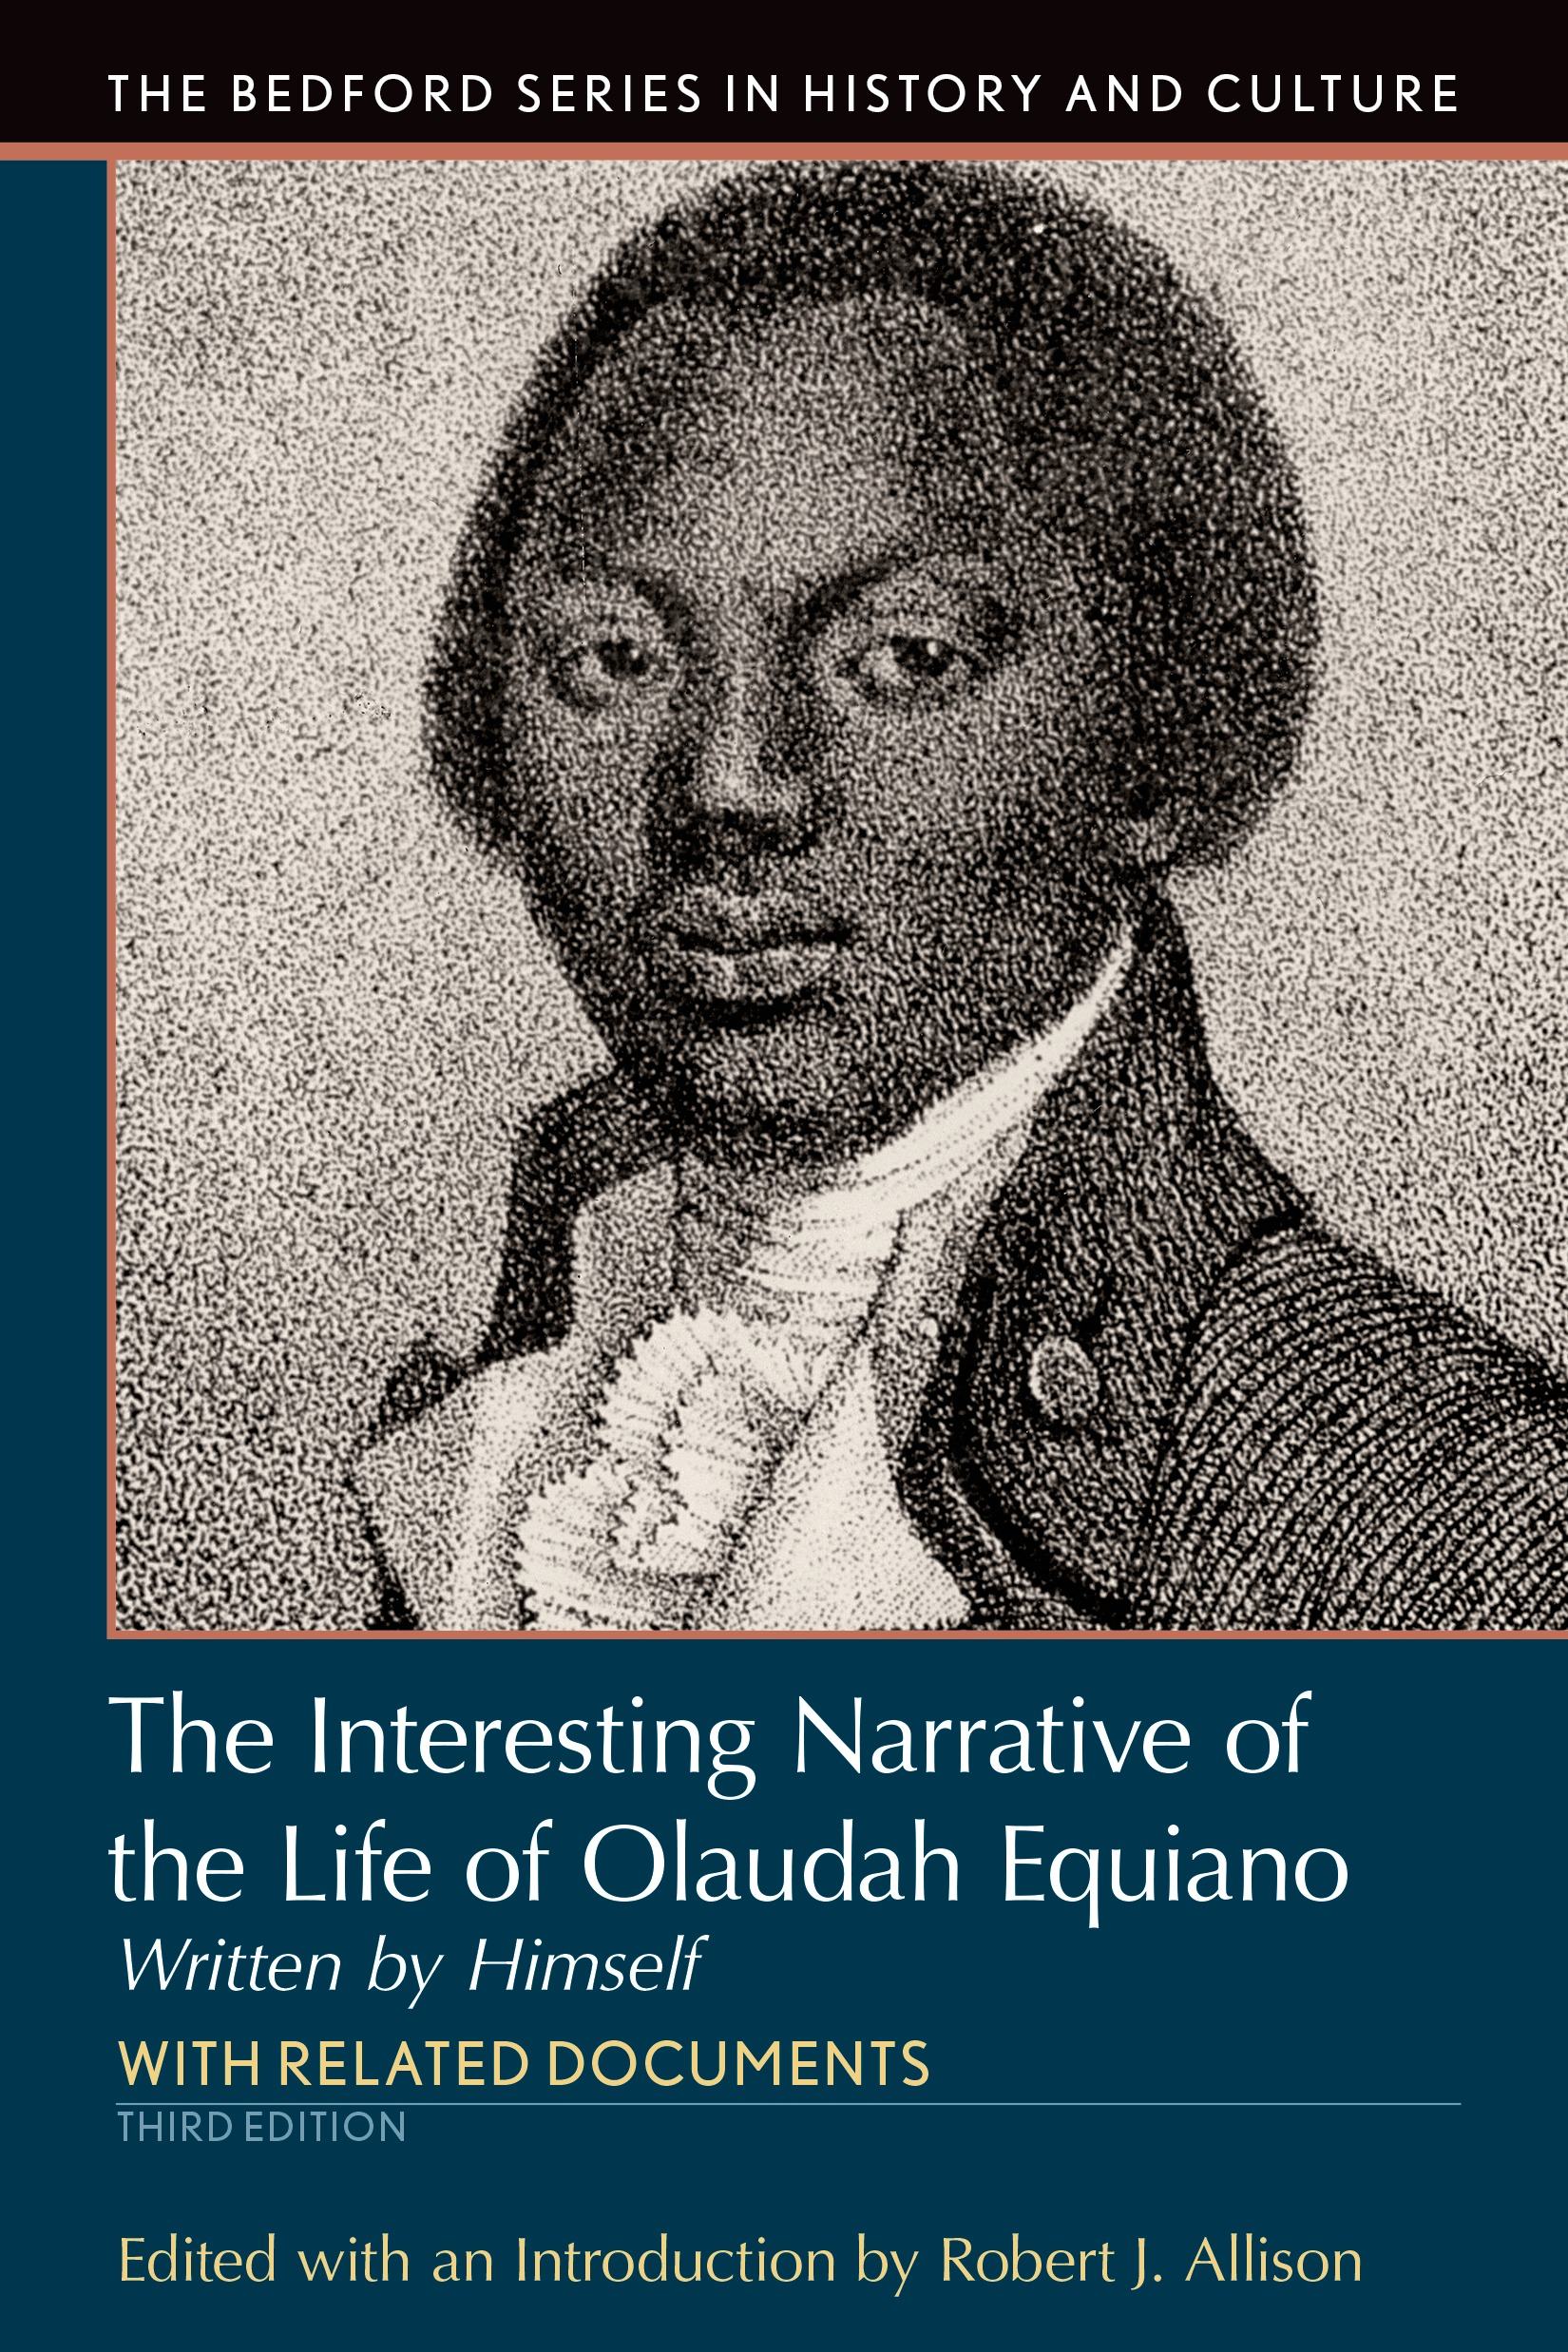 equiano essays View and download olaudah equiano essays examples also discover topics, titles, outlines, thesis statements, and conclusions for your olaudah equiano essay.